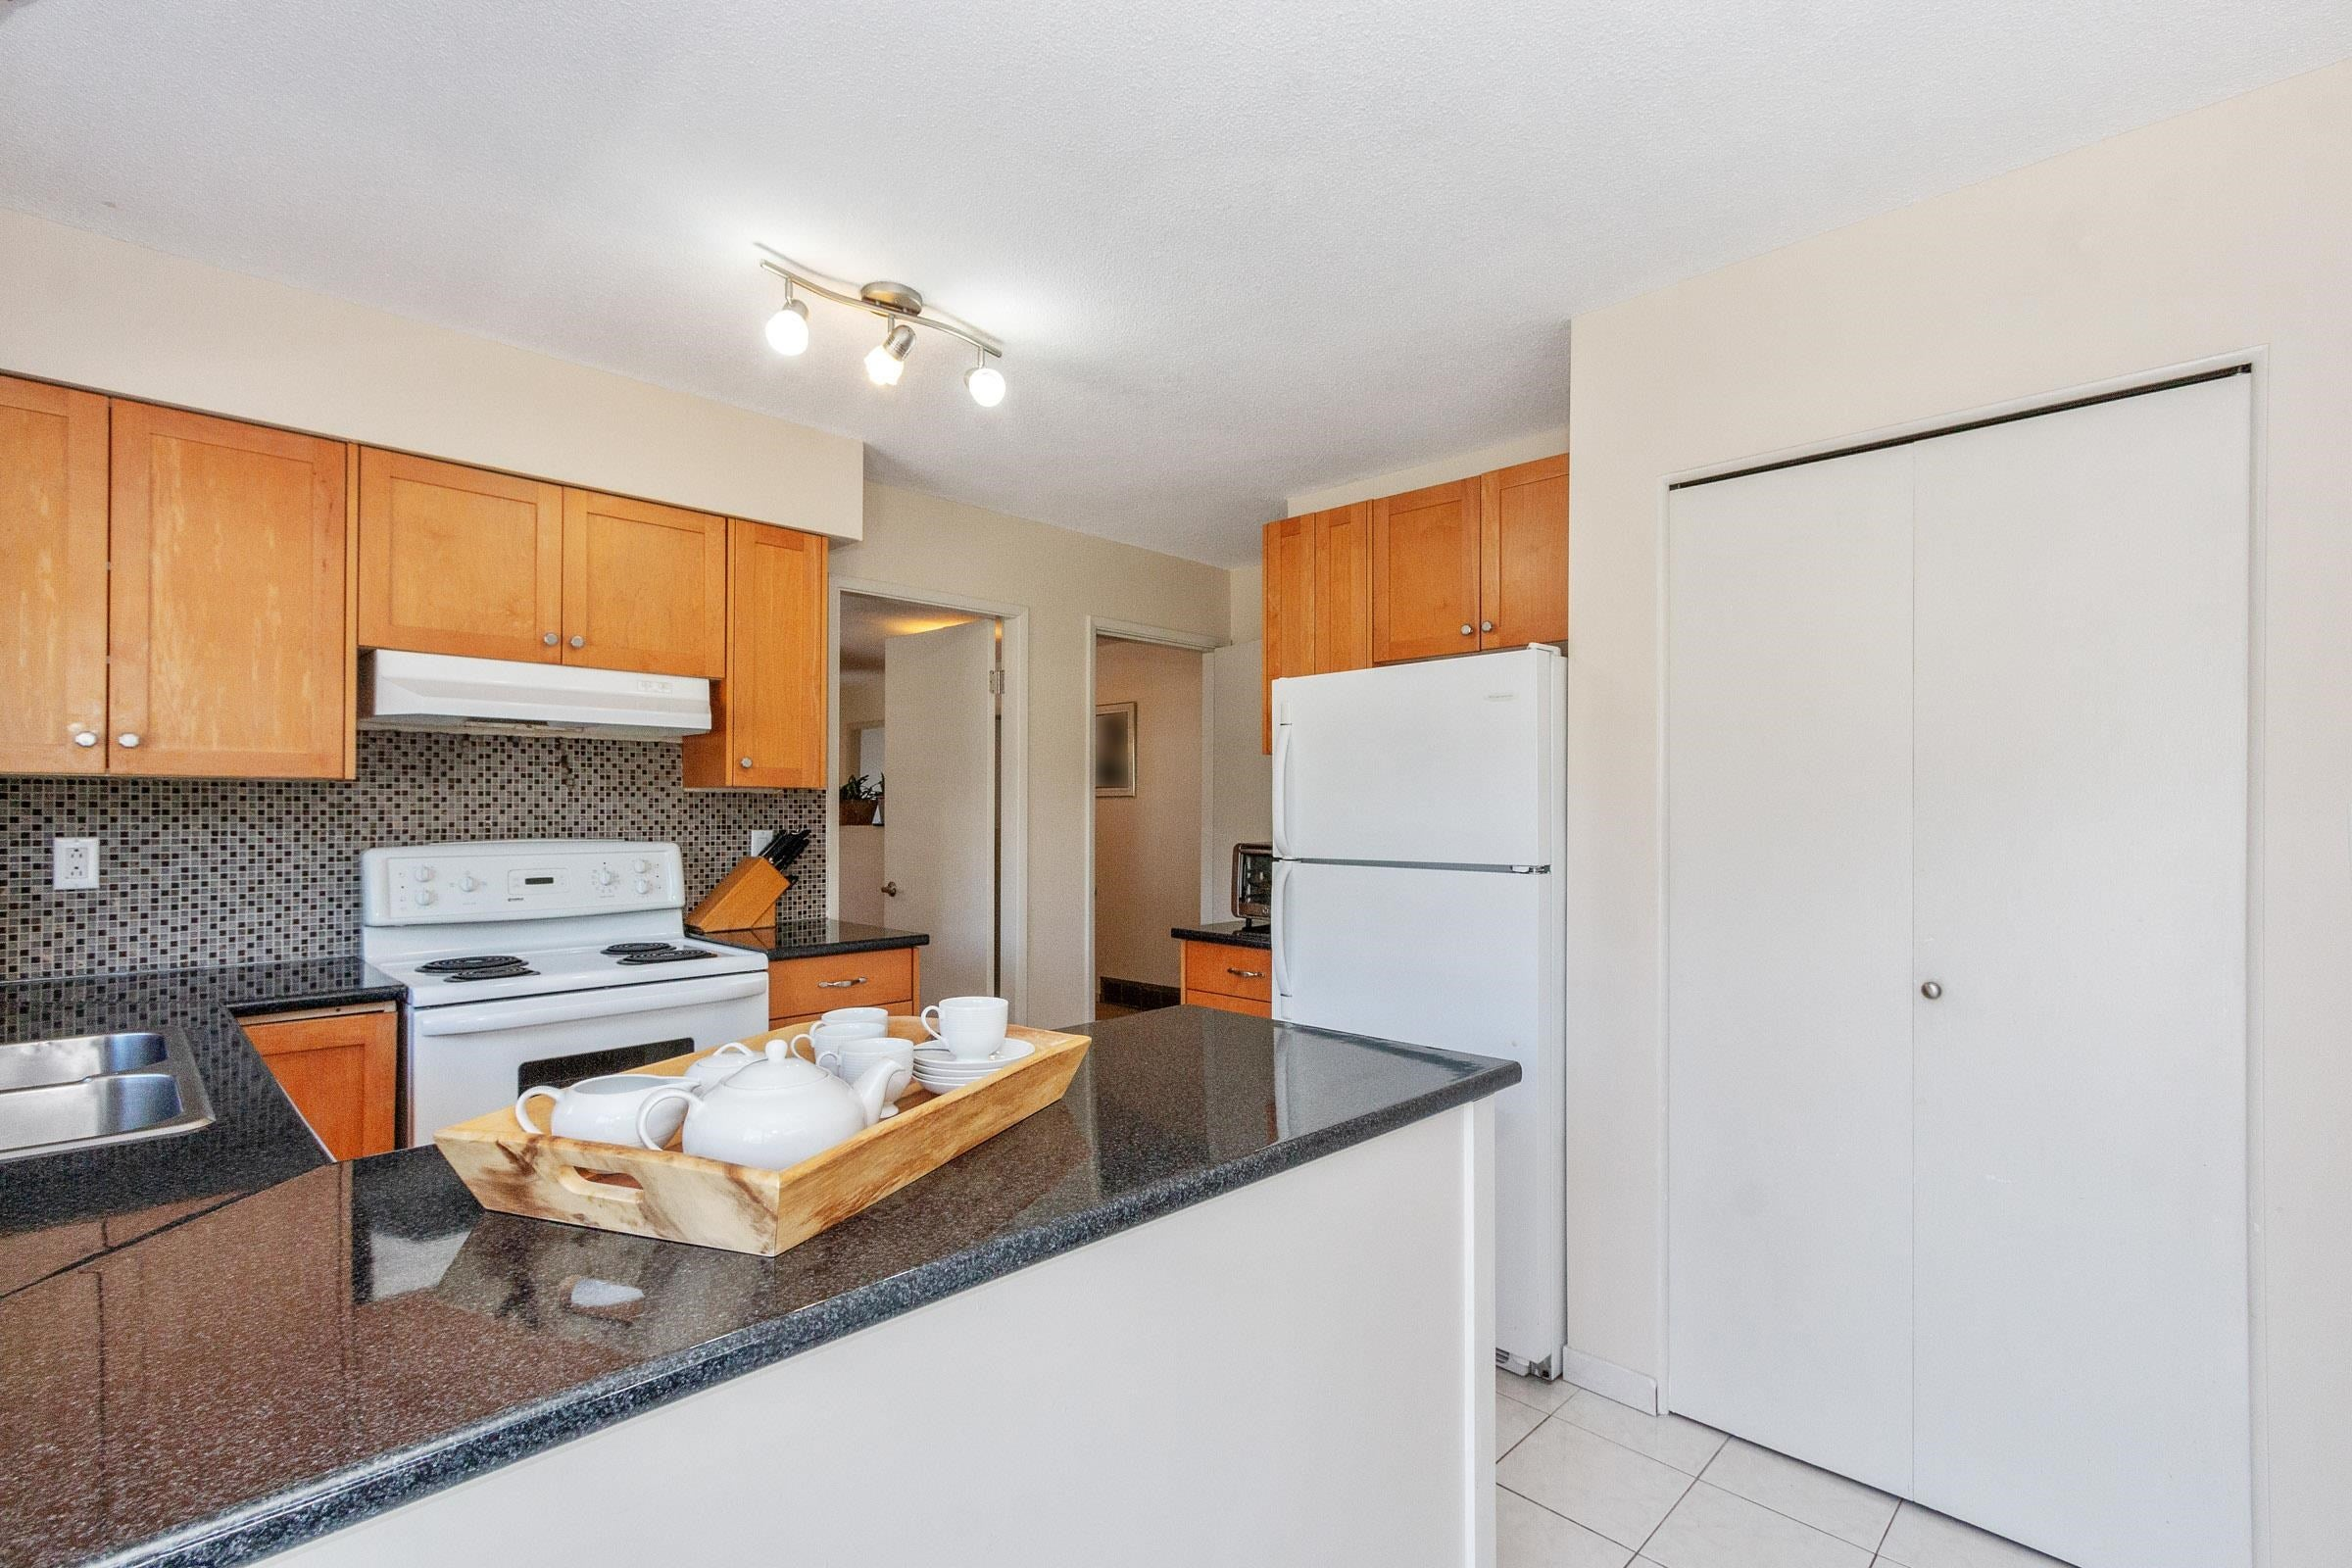 117 W ST. JAMES ROAD - Upper Lonsdale House/Single Family for sale, 5 Bedrooms (R2614107) - #10